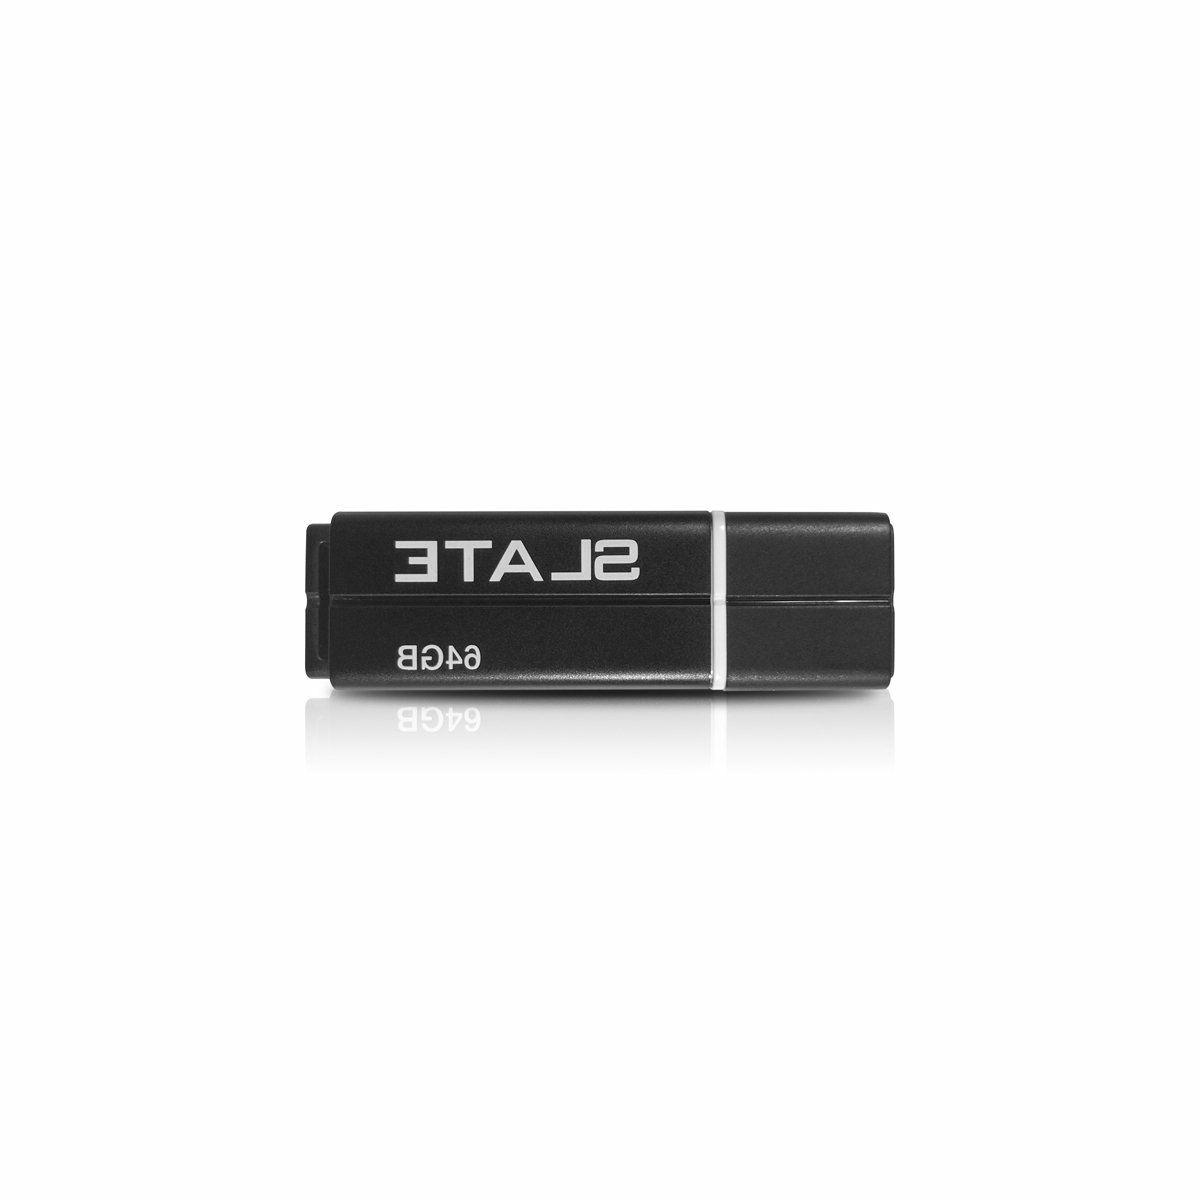 PATRIOT 64GB USB Flash Drive USB 3.0/3.1 - PSF64GLSS3USB